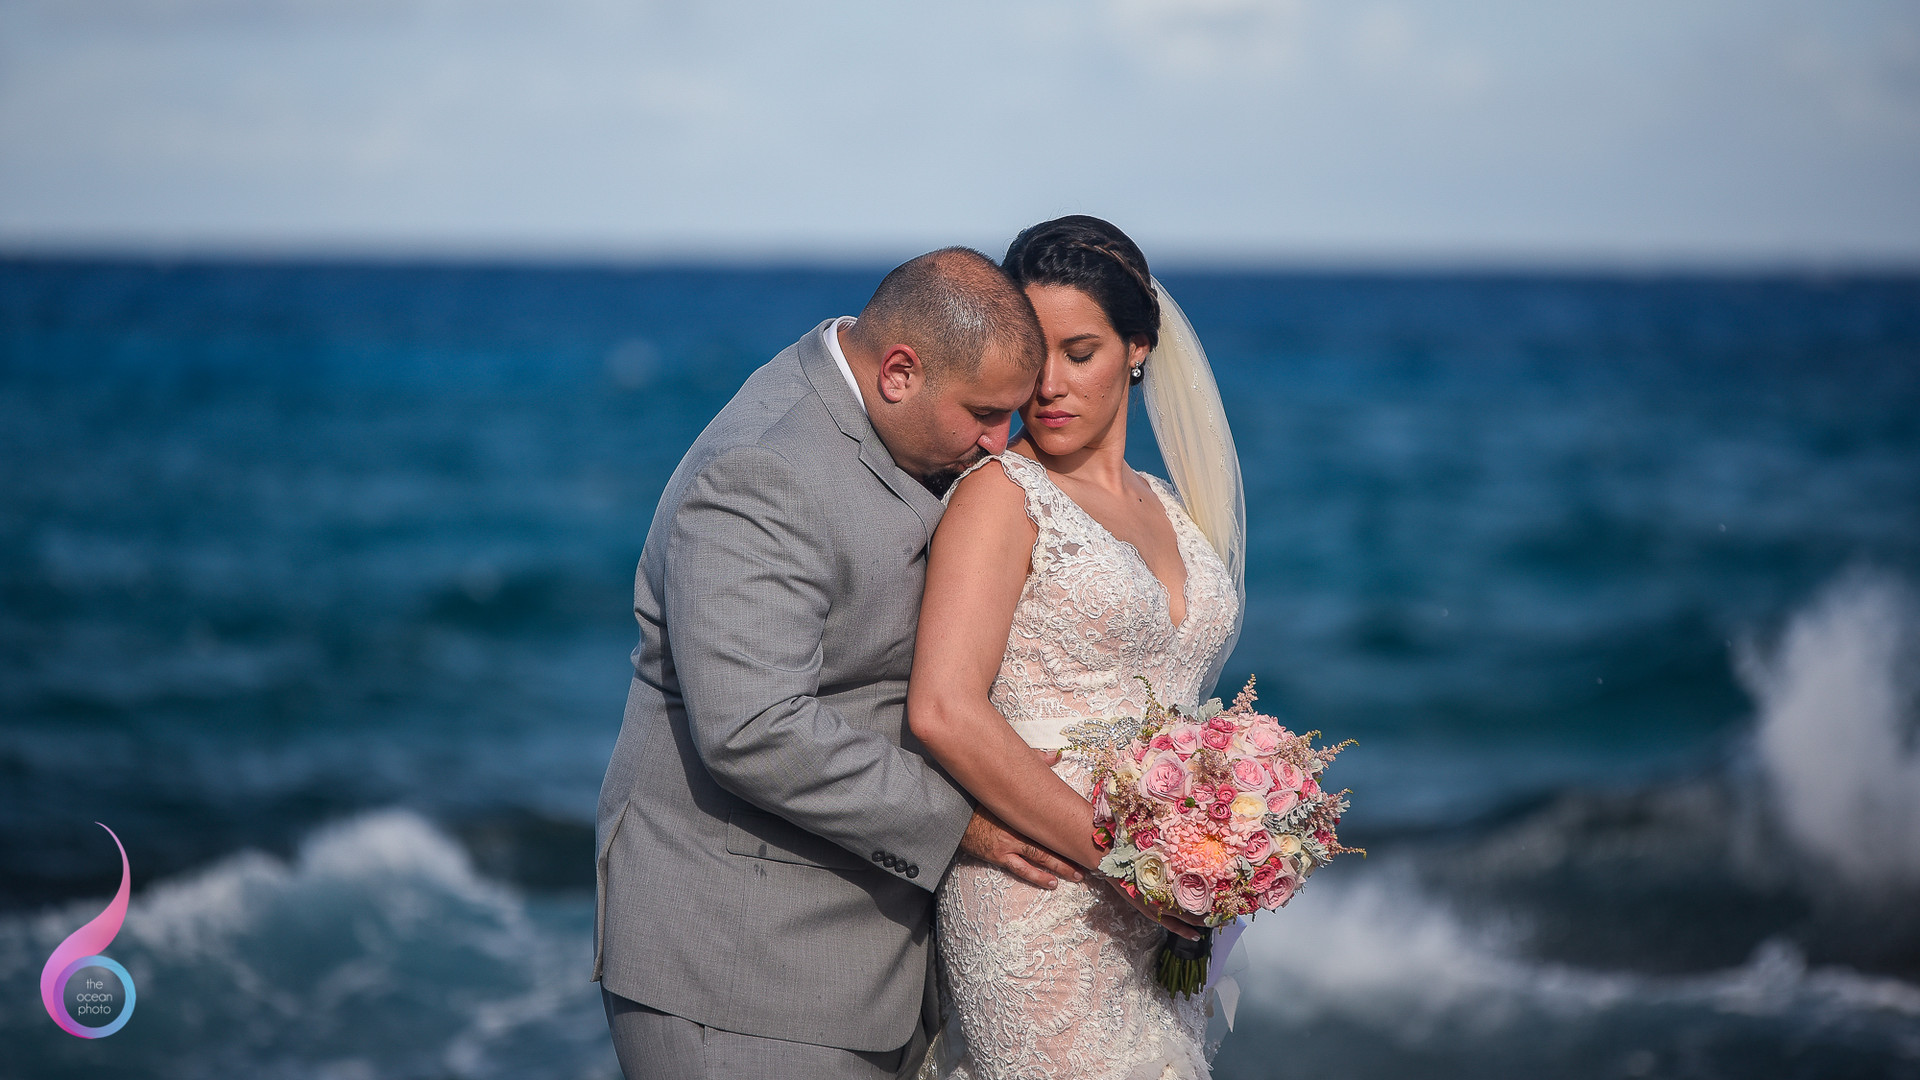 Caribbean Wedding Mexico, Wedding Photography Riviera Maya, Wedding Photographer Mexico, Occidental at Xcaret Destination